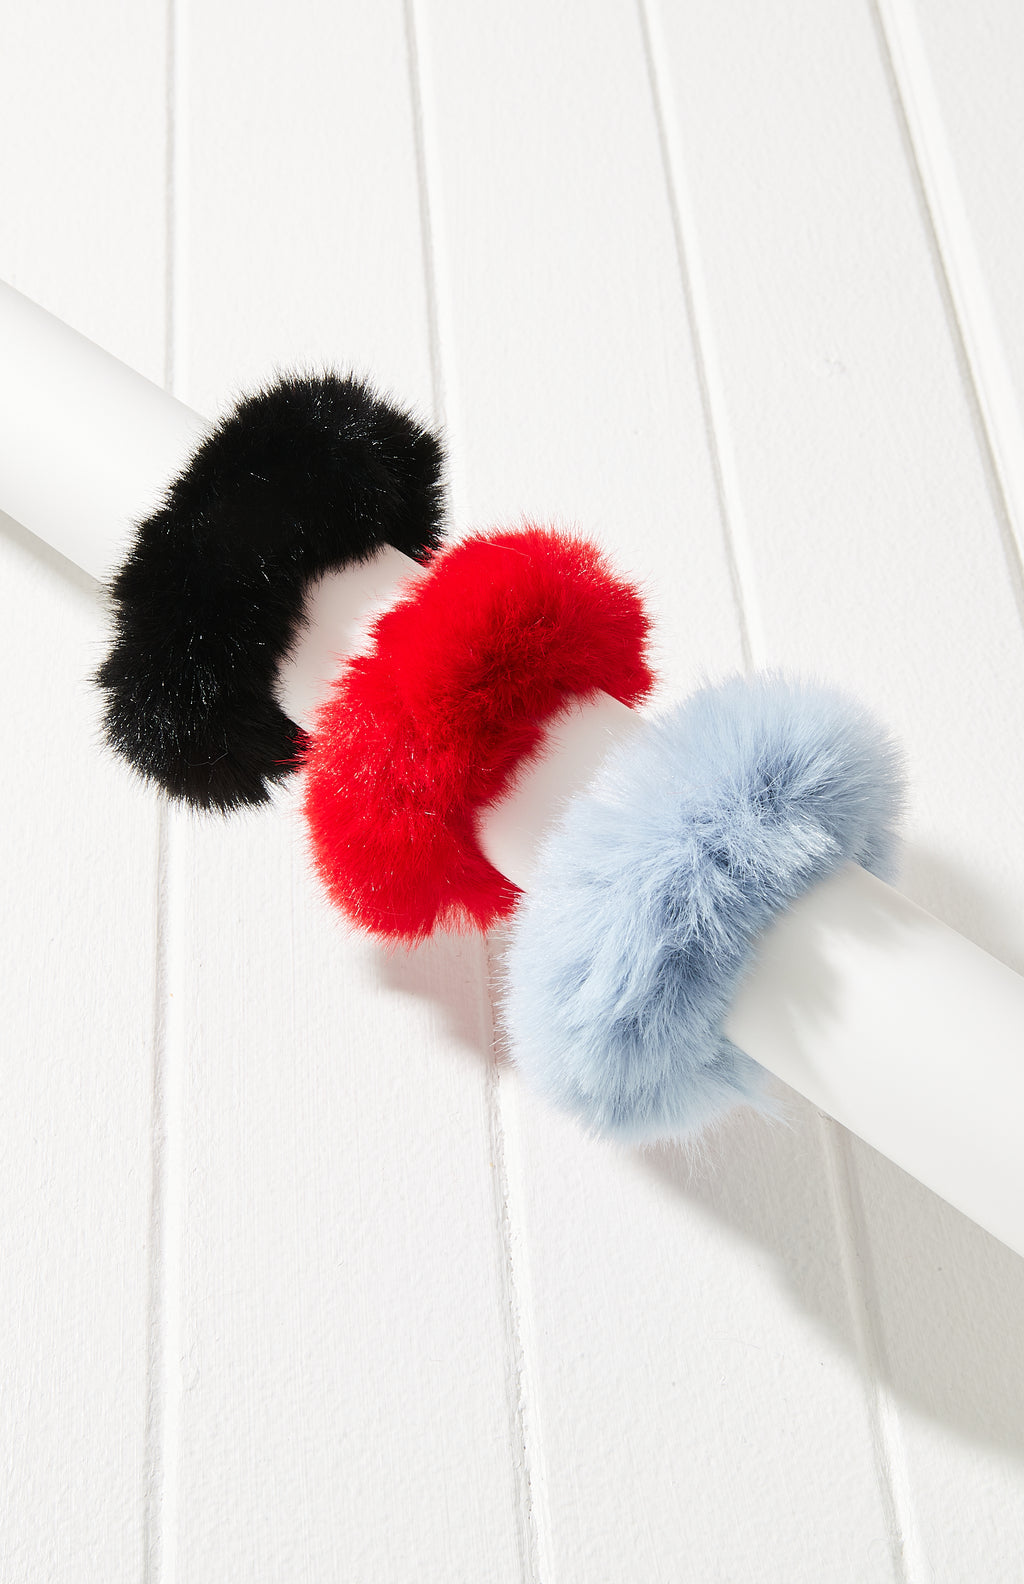 Faux Fur Scrunchie Hair Tie 3 Pack - Red/Black/Blue